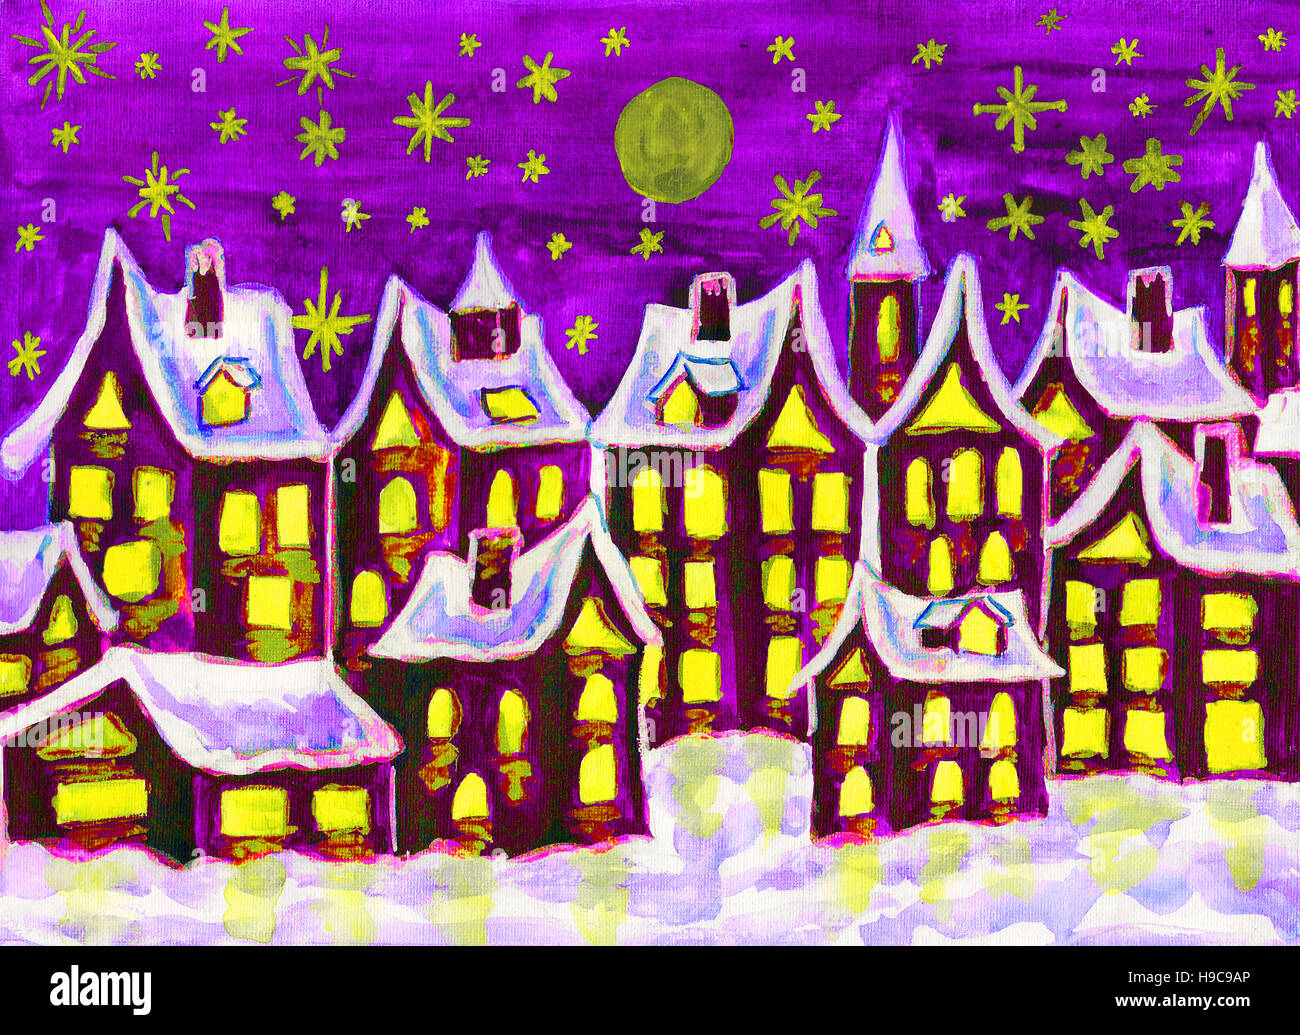 Weihnachtsmotive Kinder.Painting Watercolours Fairy Dreams Town In Winter Can Be Used As